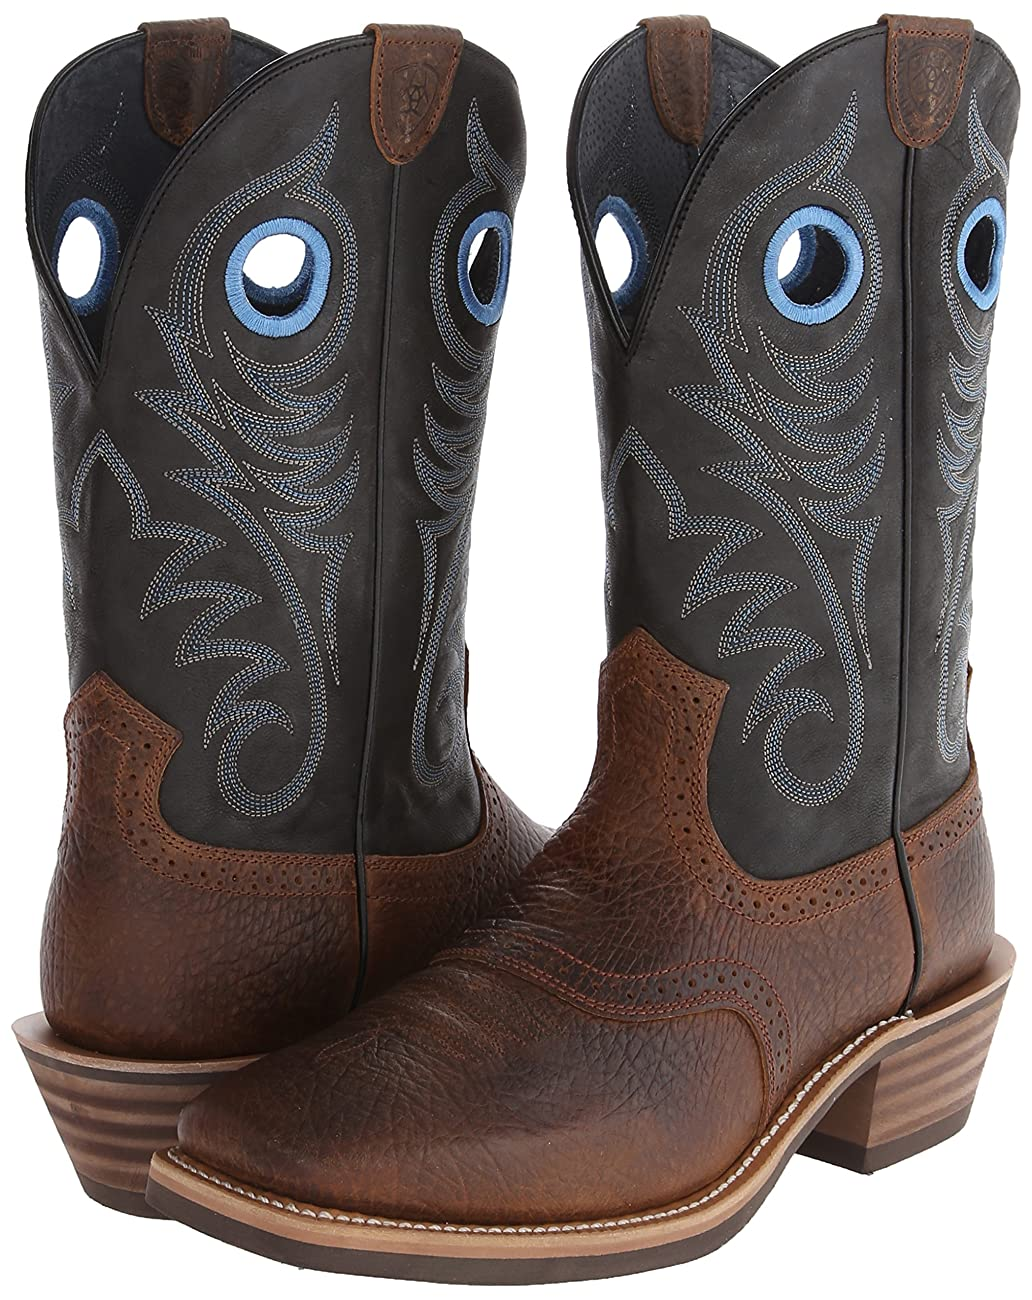 Ariat Men's Heritage Roughstock Western Cowboy Boot 6